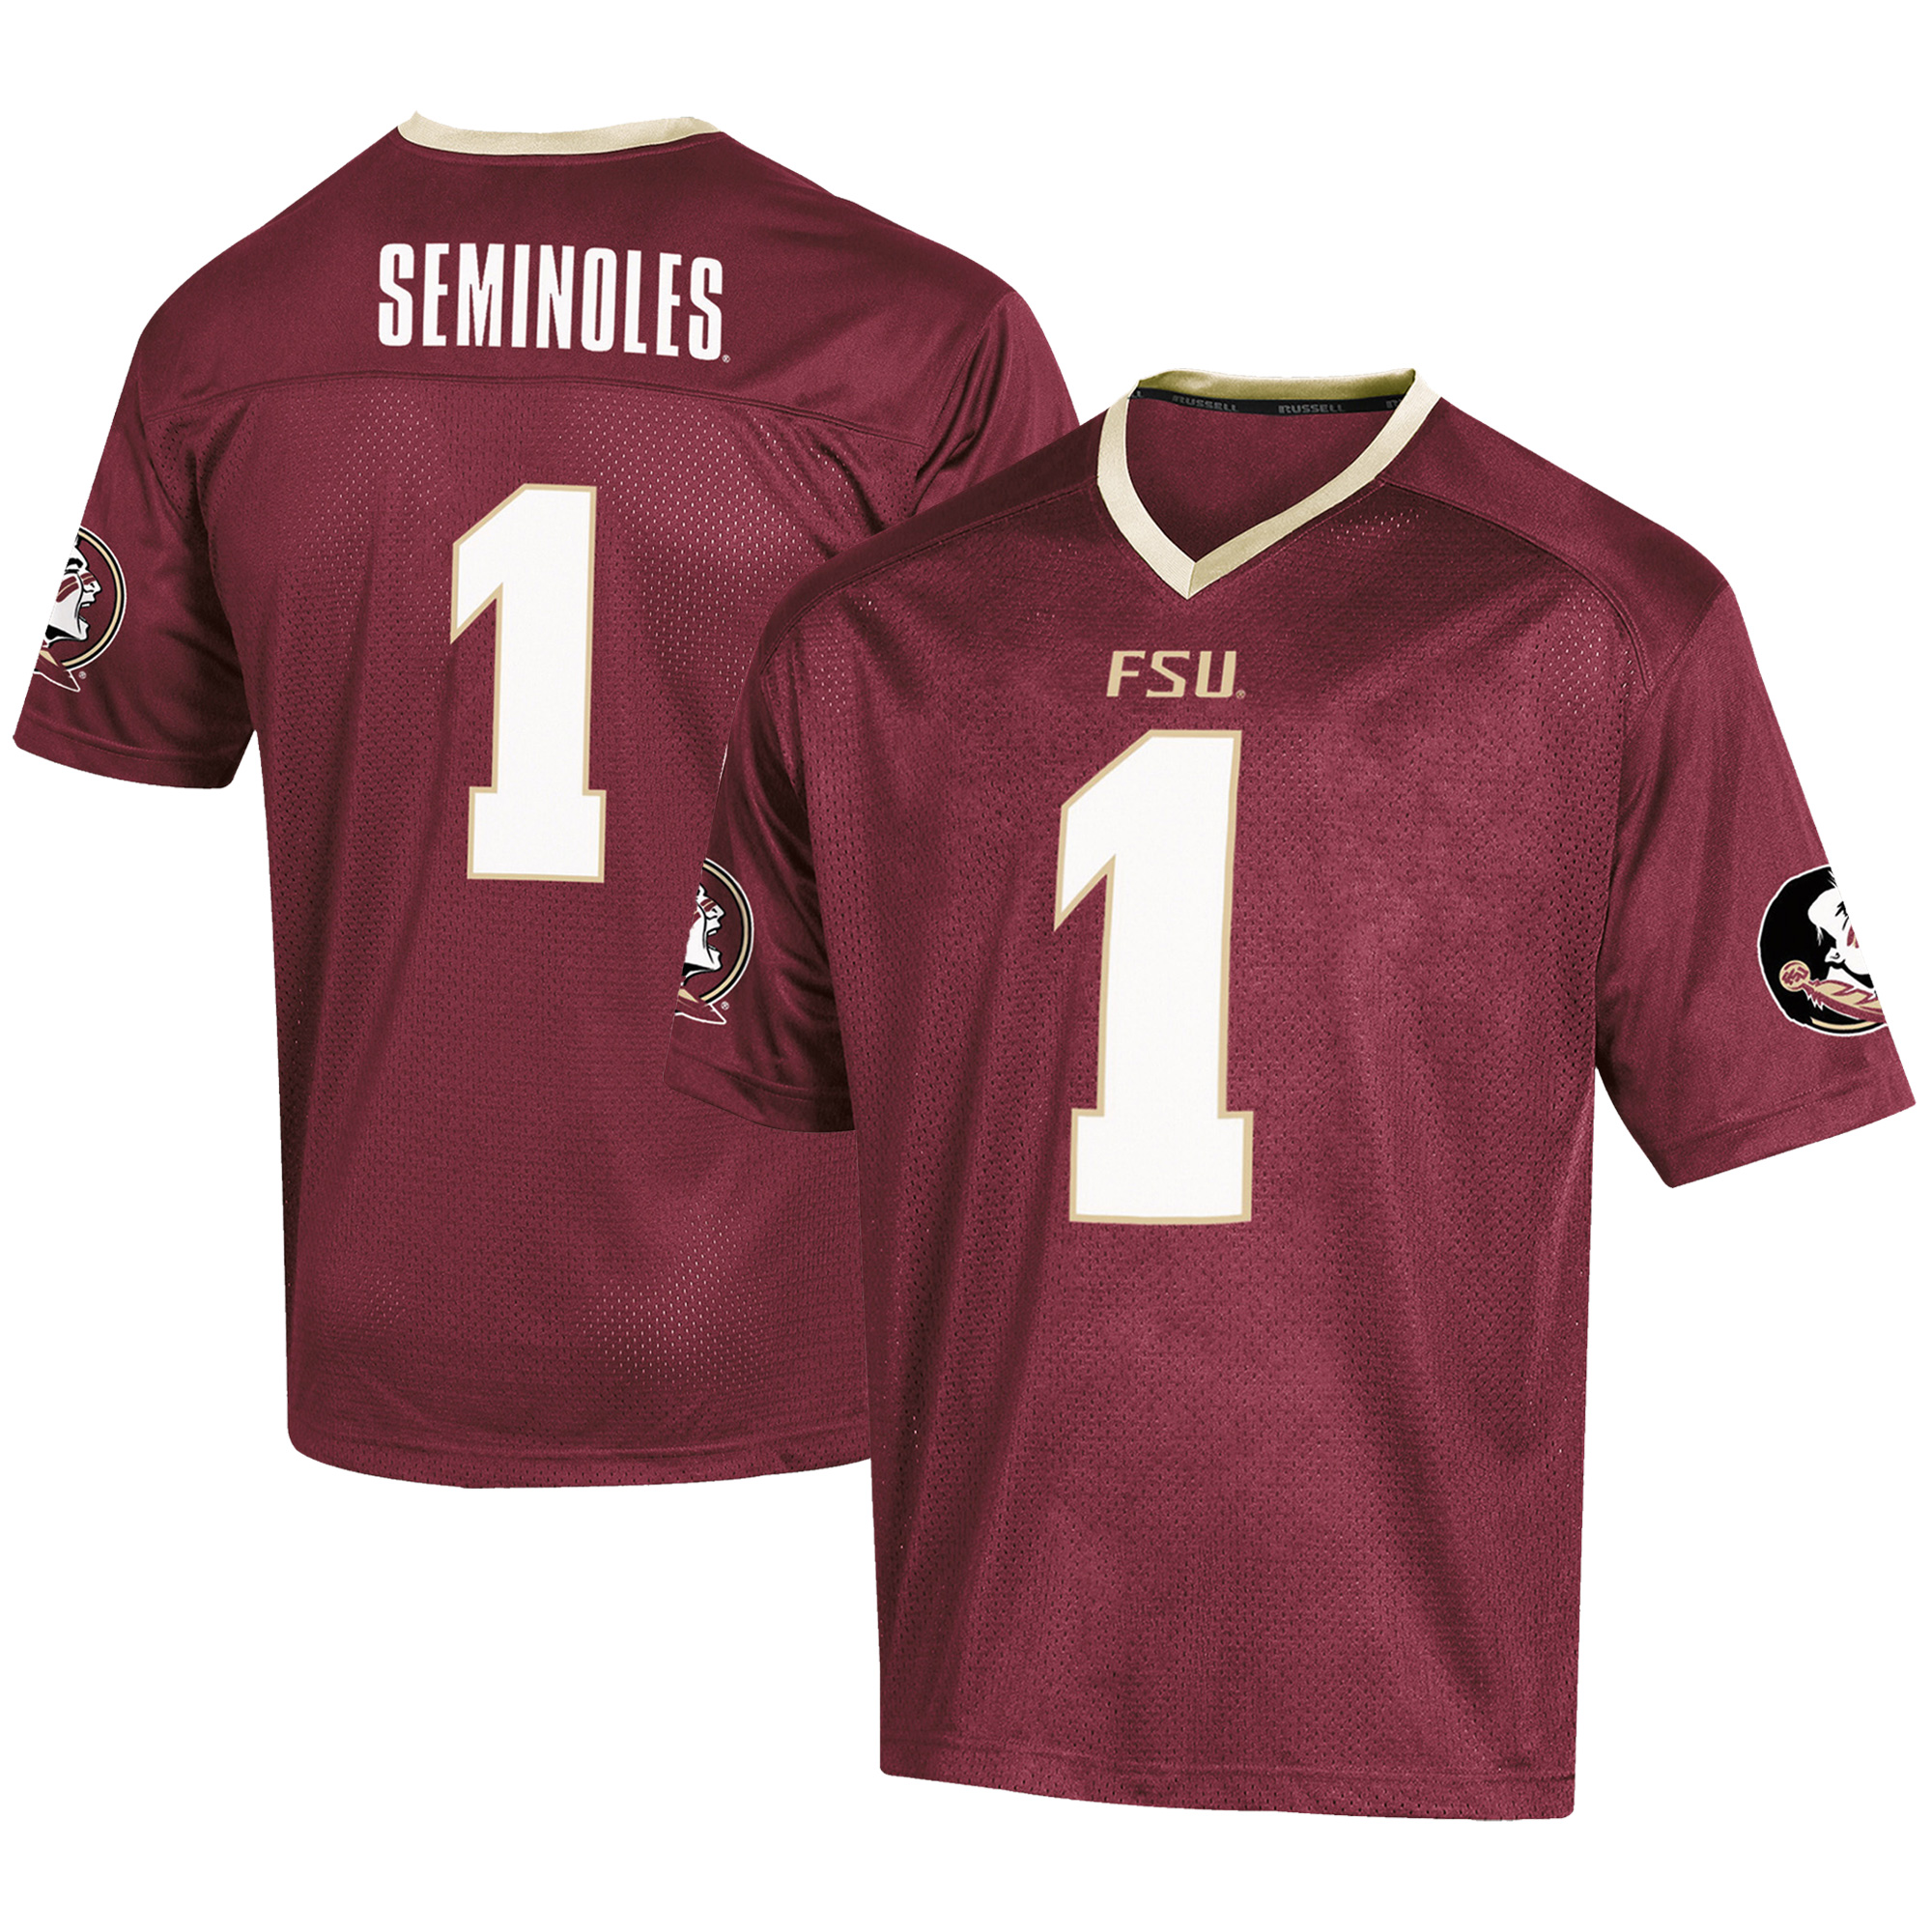 Men's Russell #1 Garnet Florida State Seminoles Fashion Football Jersey